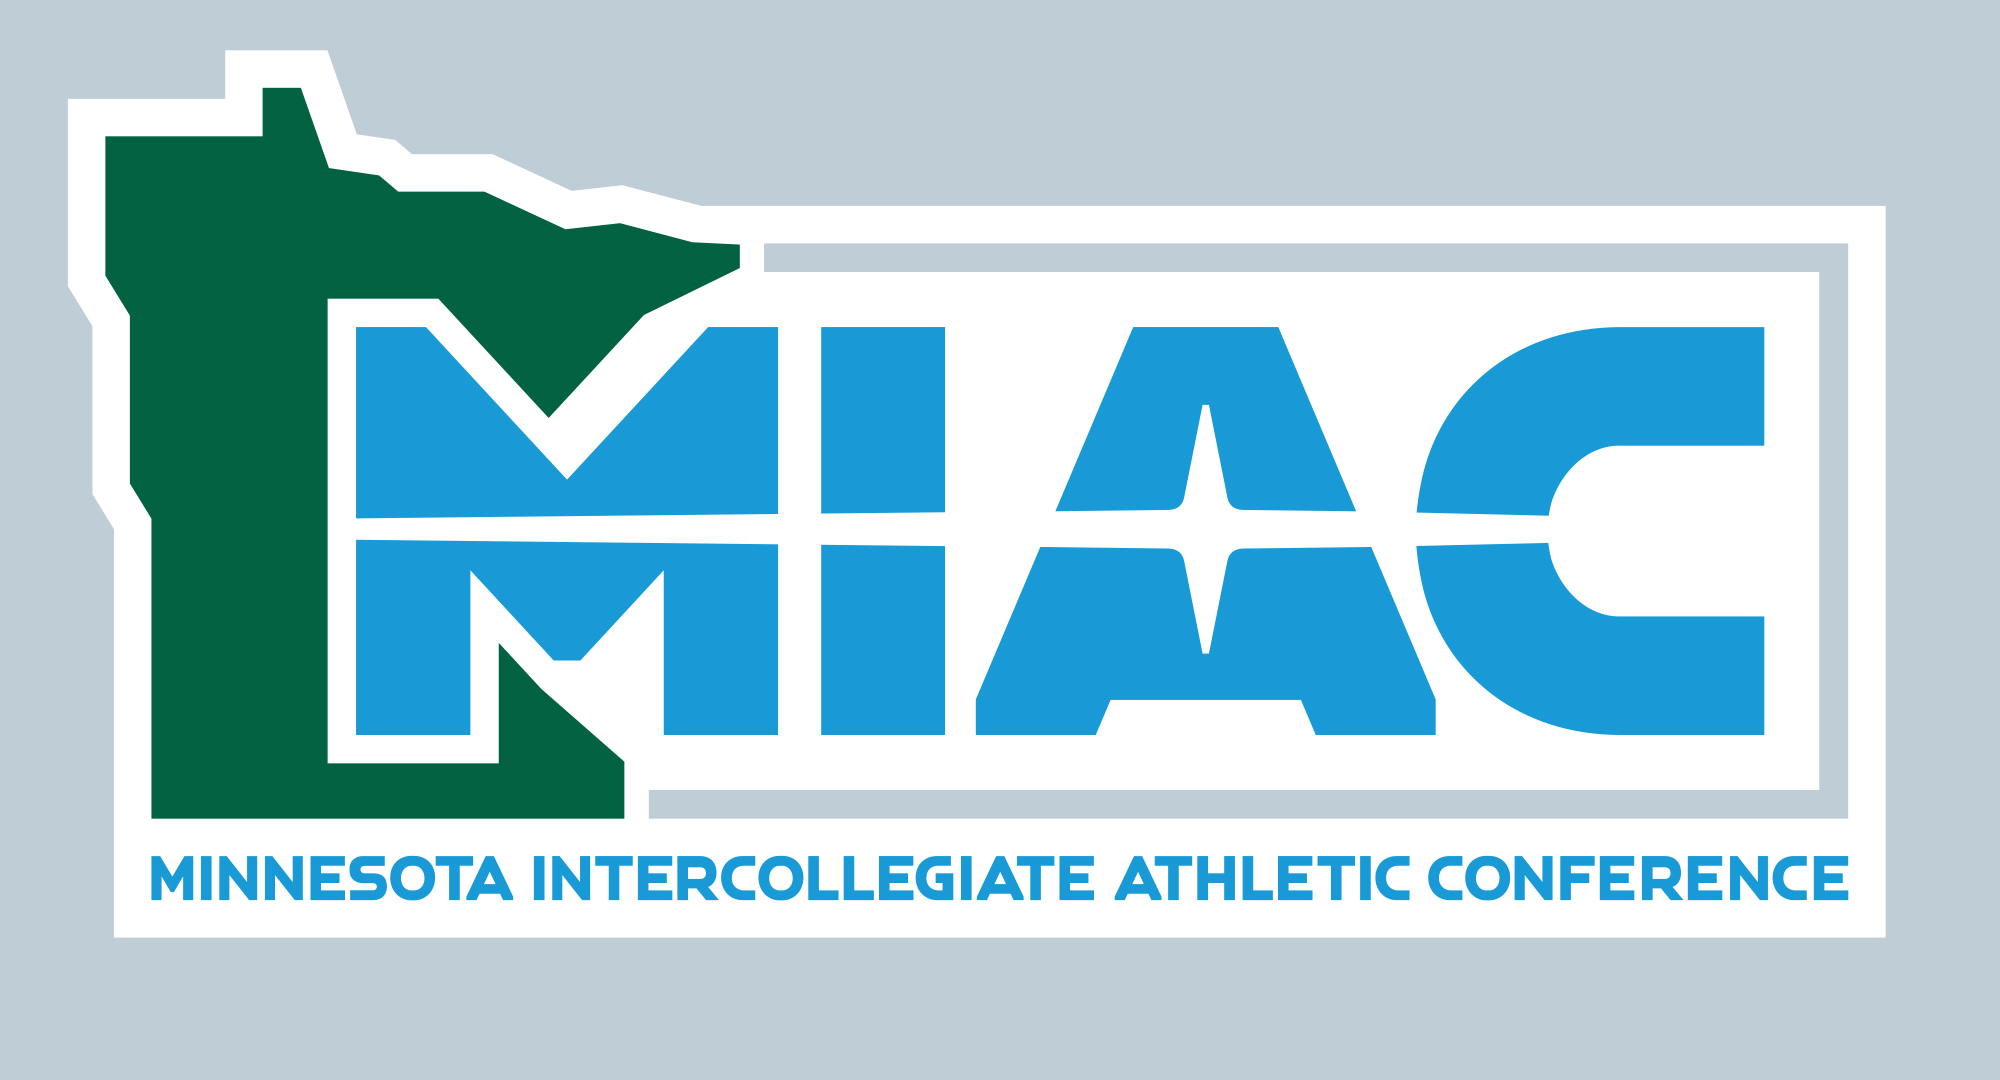 The MIAC office cancelled the 2020 regular season and postseason championships for spring sports.